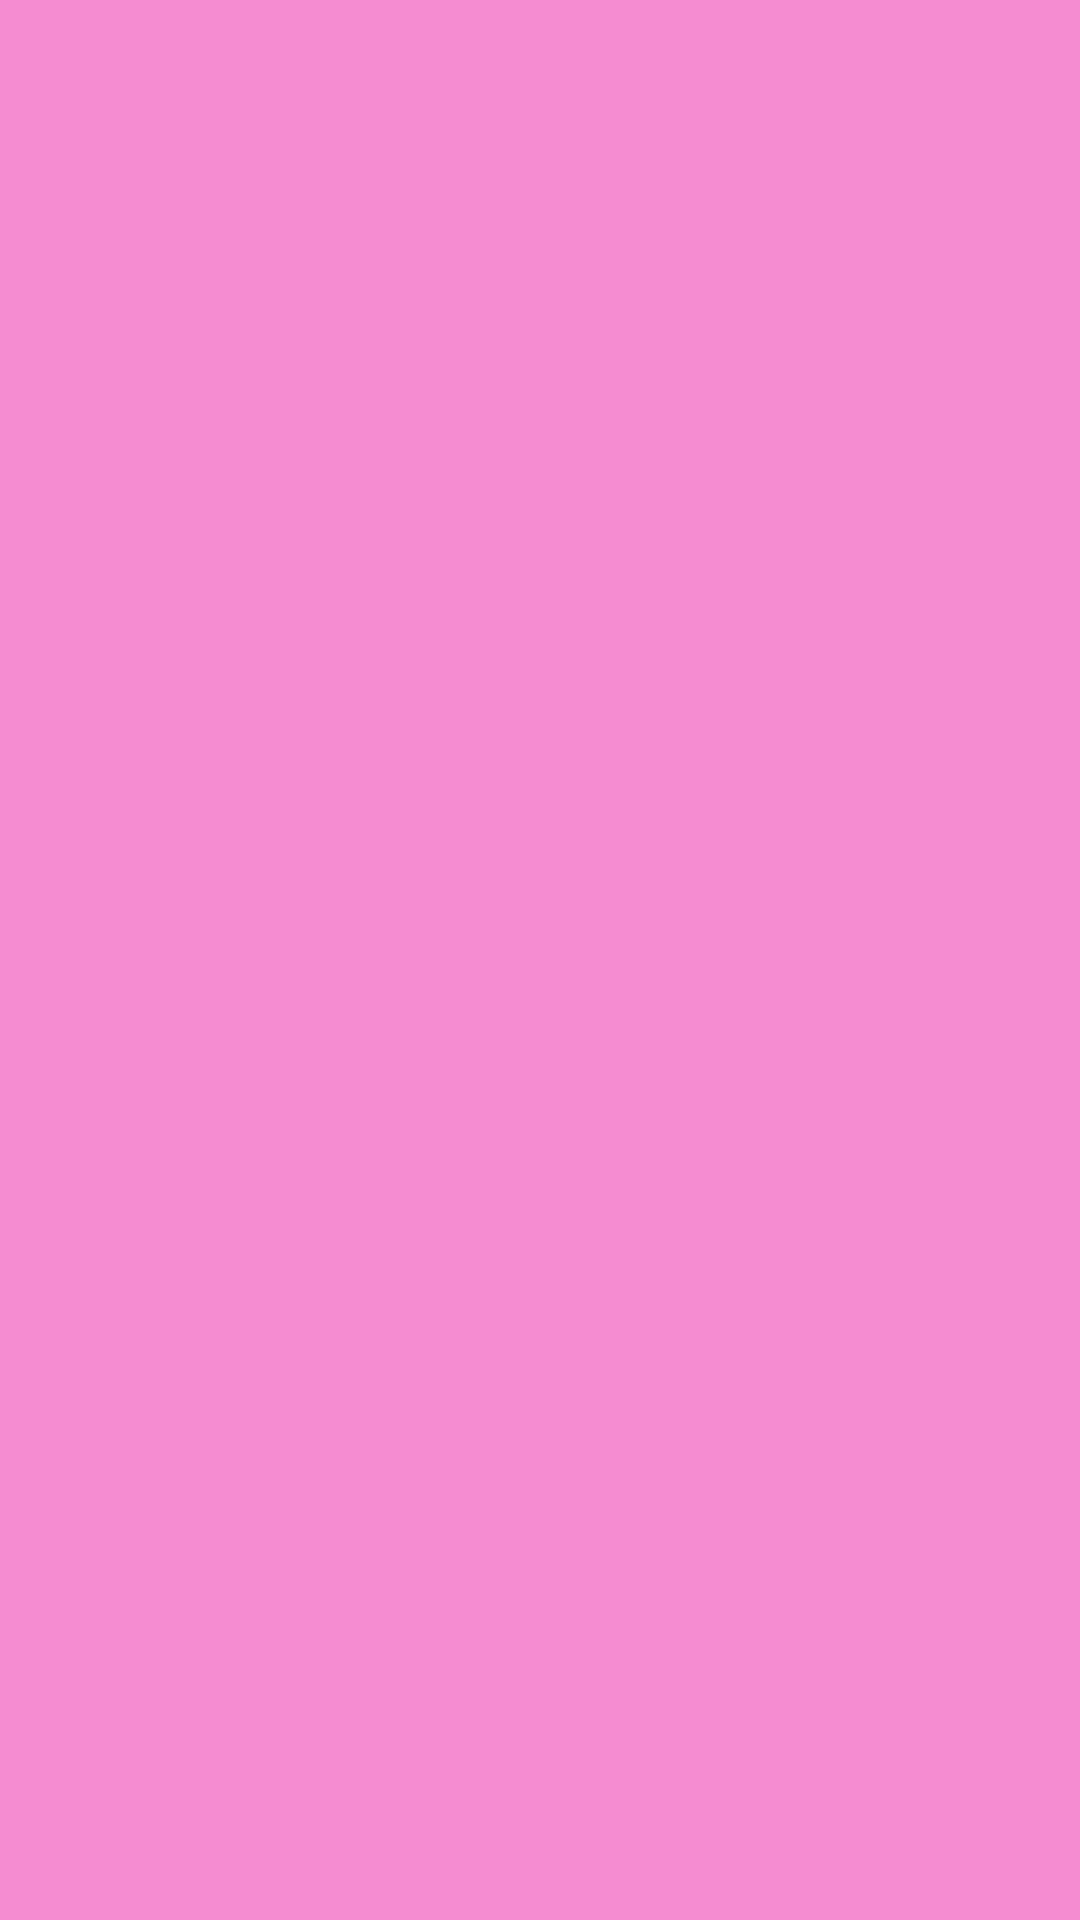 1080x1920 Orchid Pink Solid Color Background